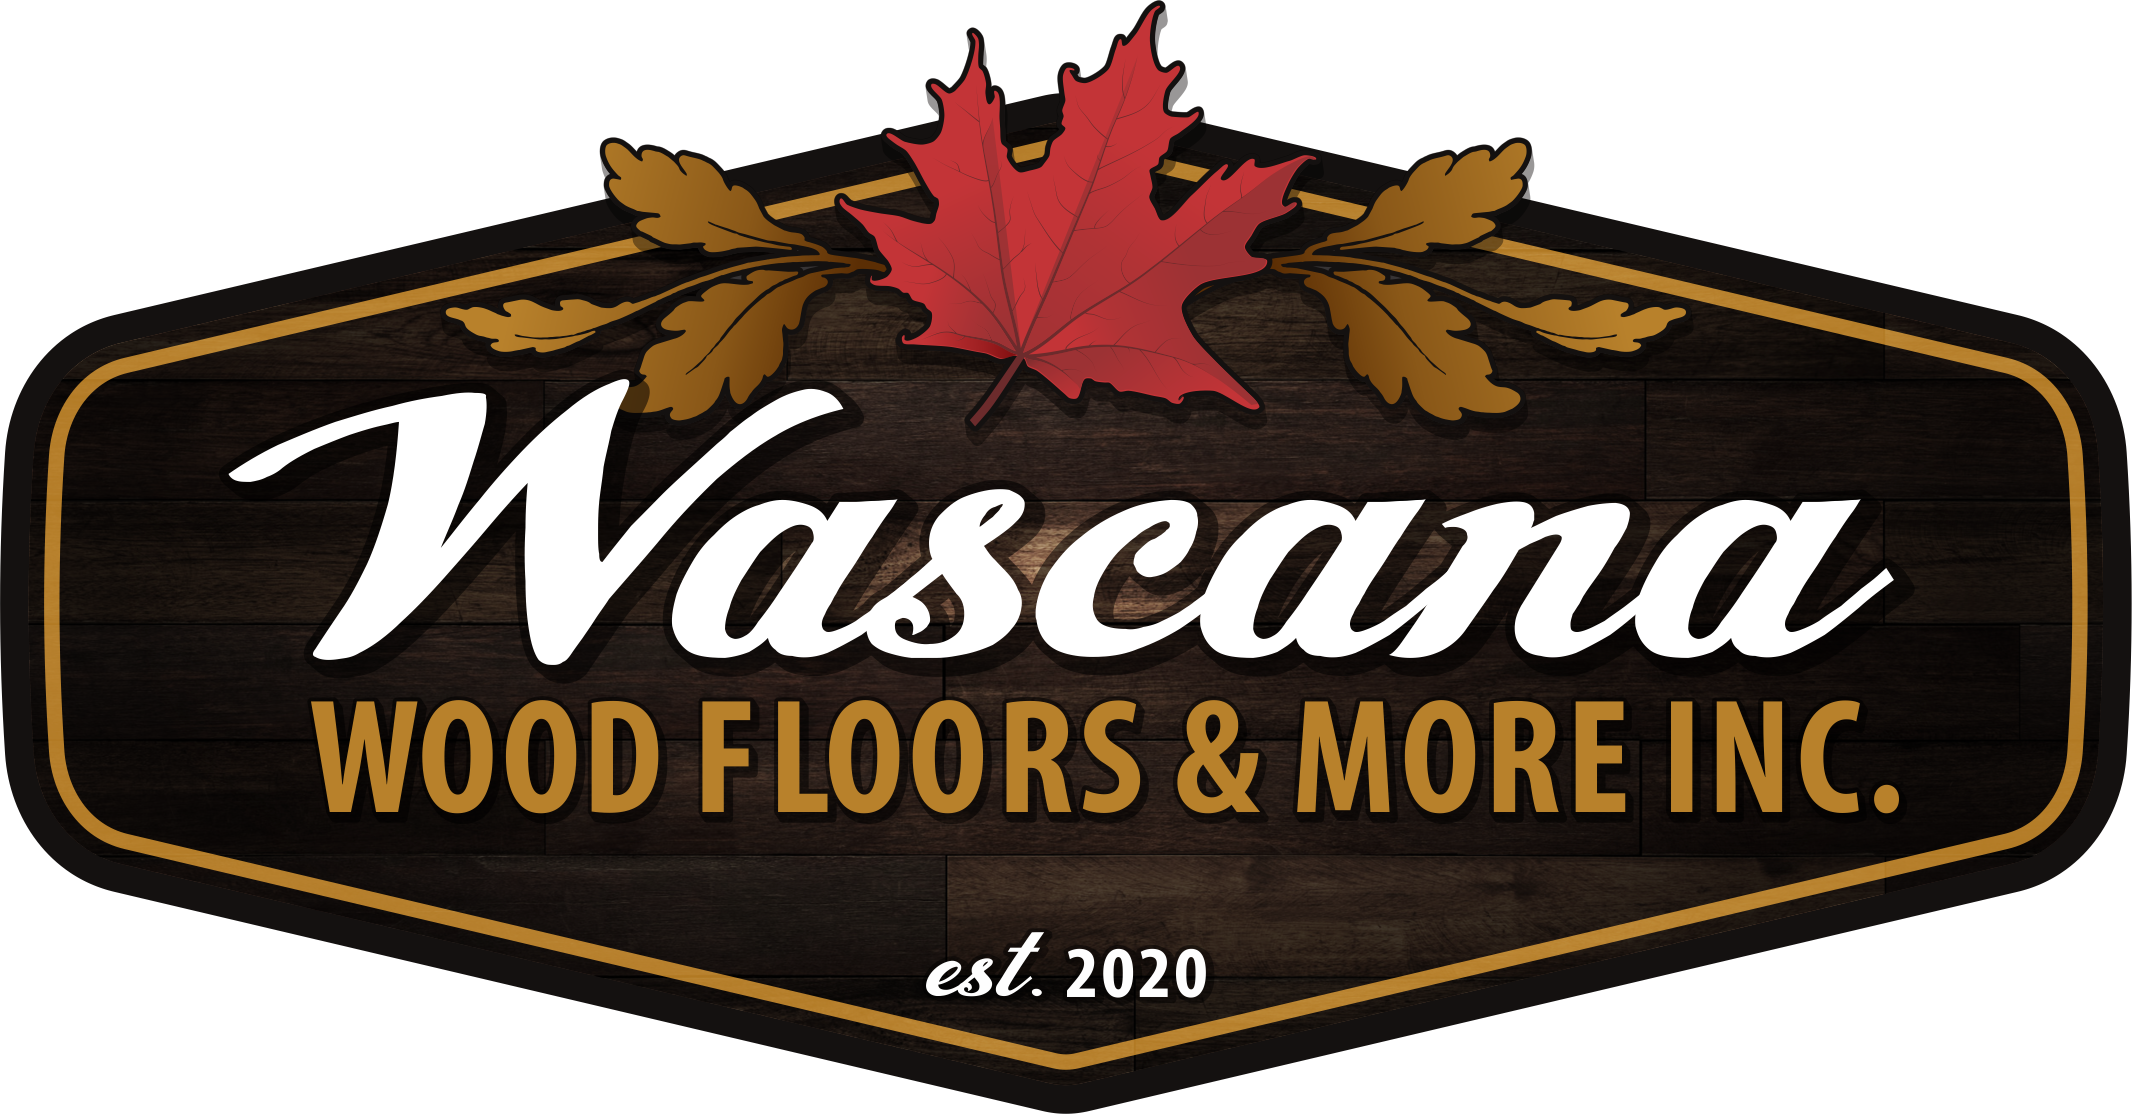 Wascana Wood Floors & More Inc.